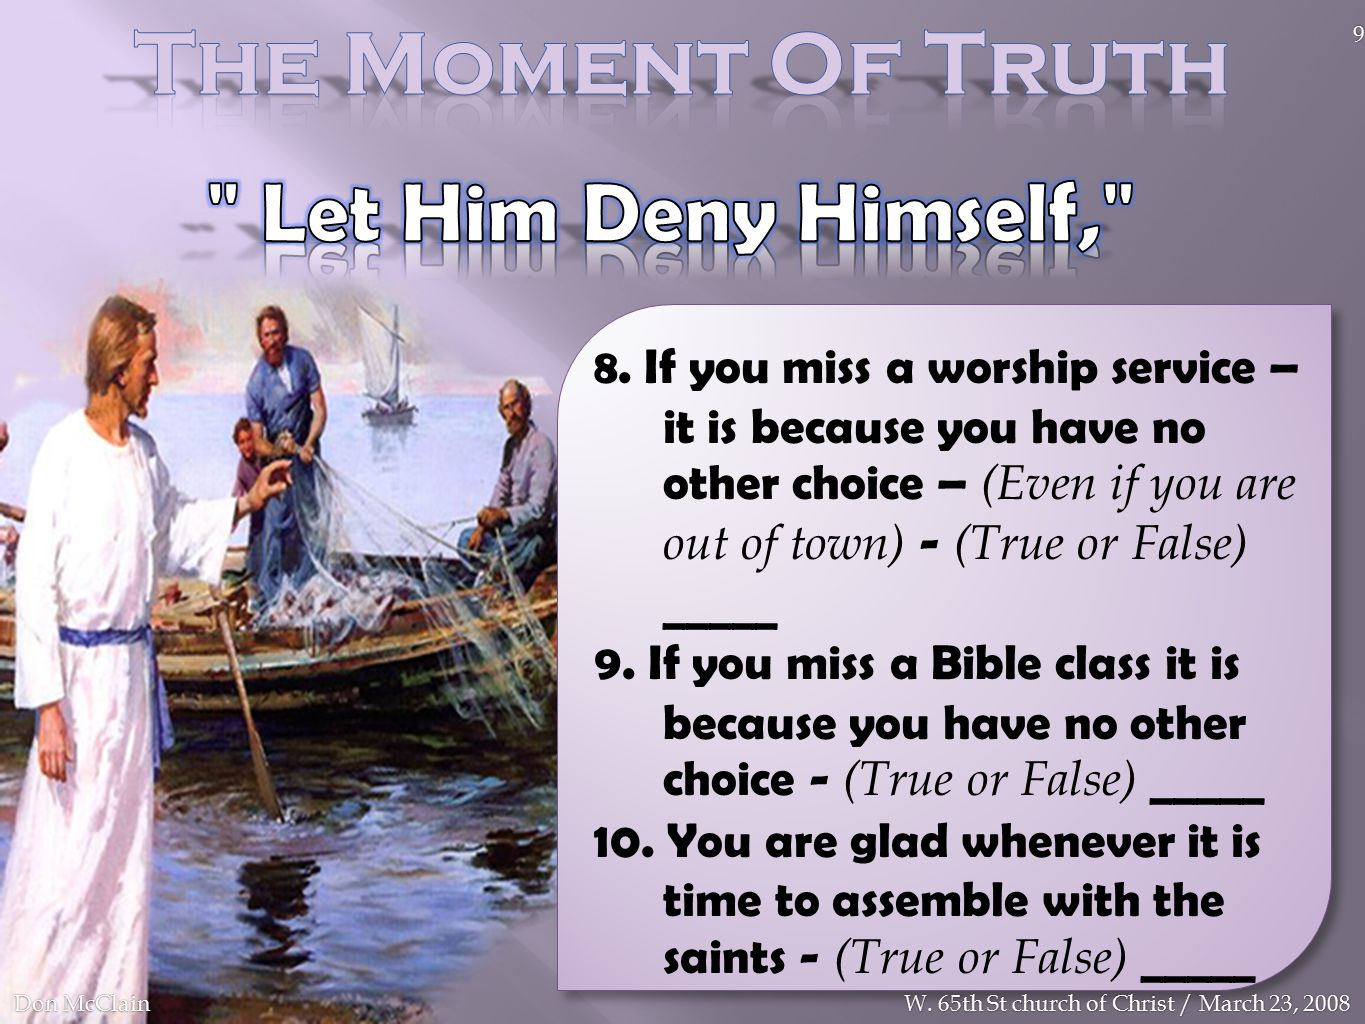 8. If you miss a worship service – it is because you have no other choice – (Even if you are out of town) - (True or False) _____ 9. If you miss a Bib